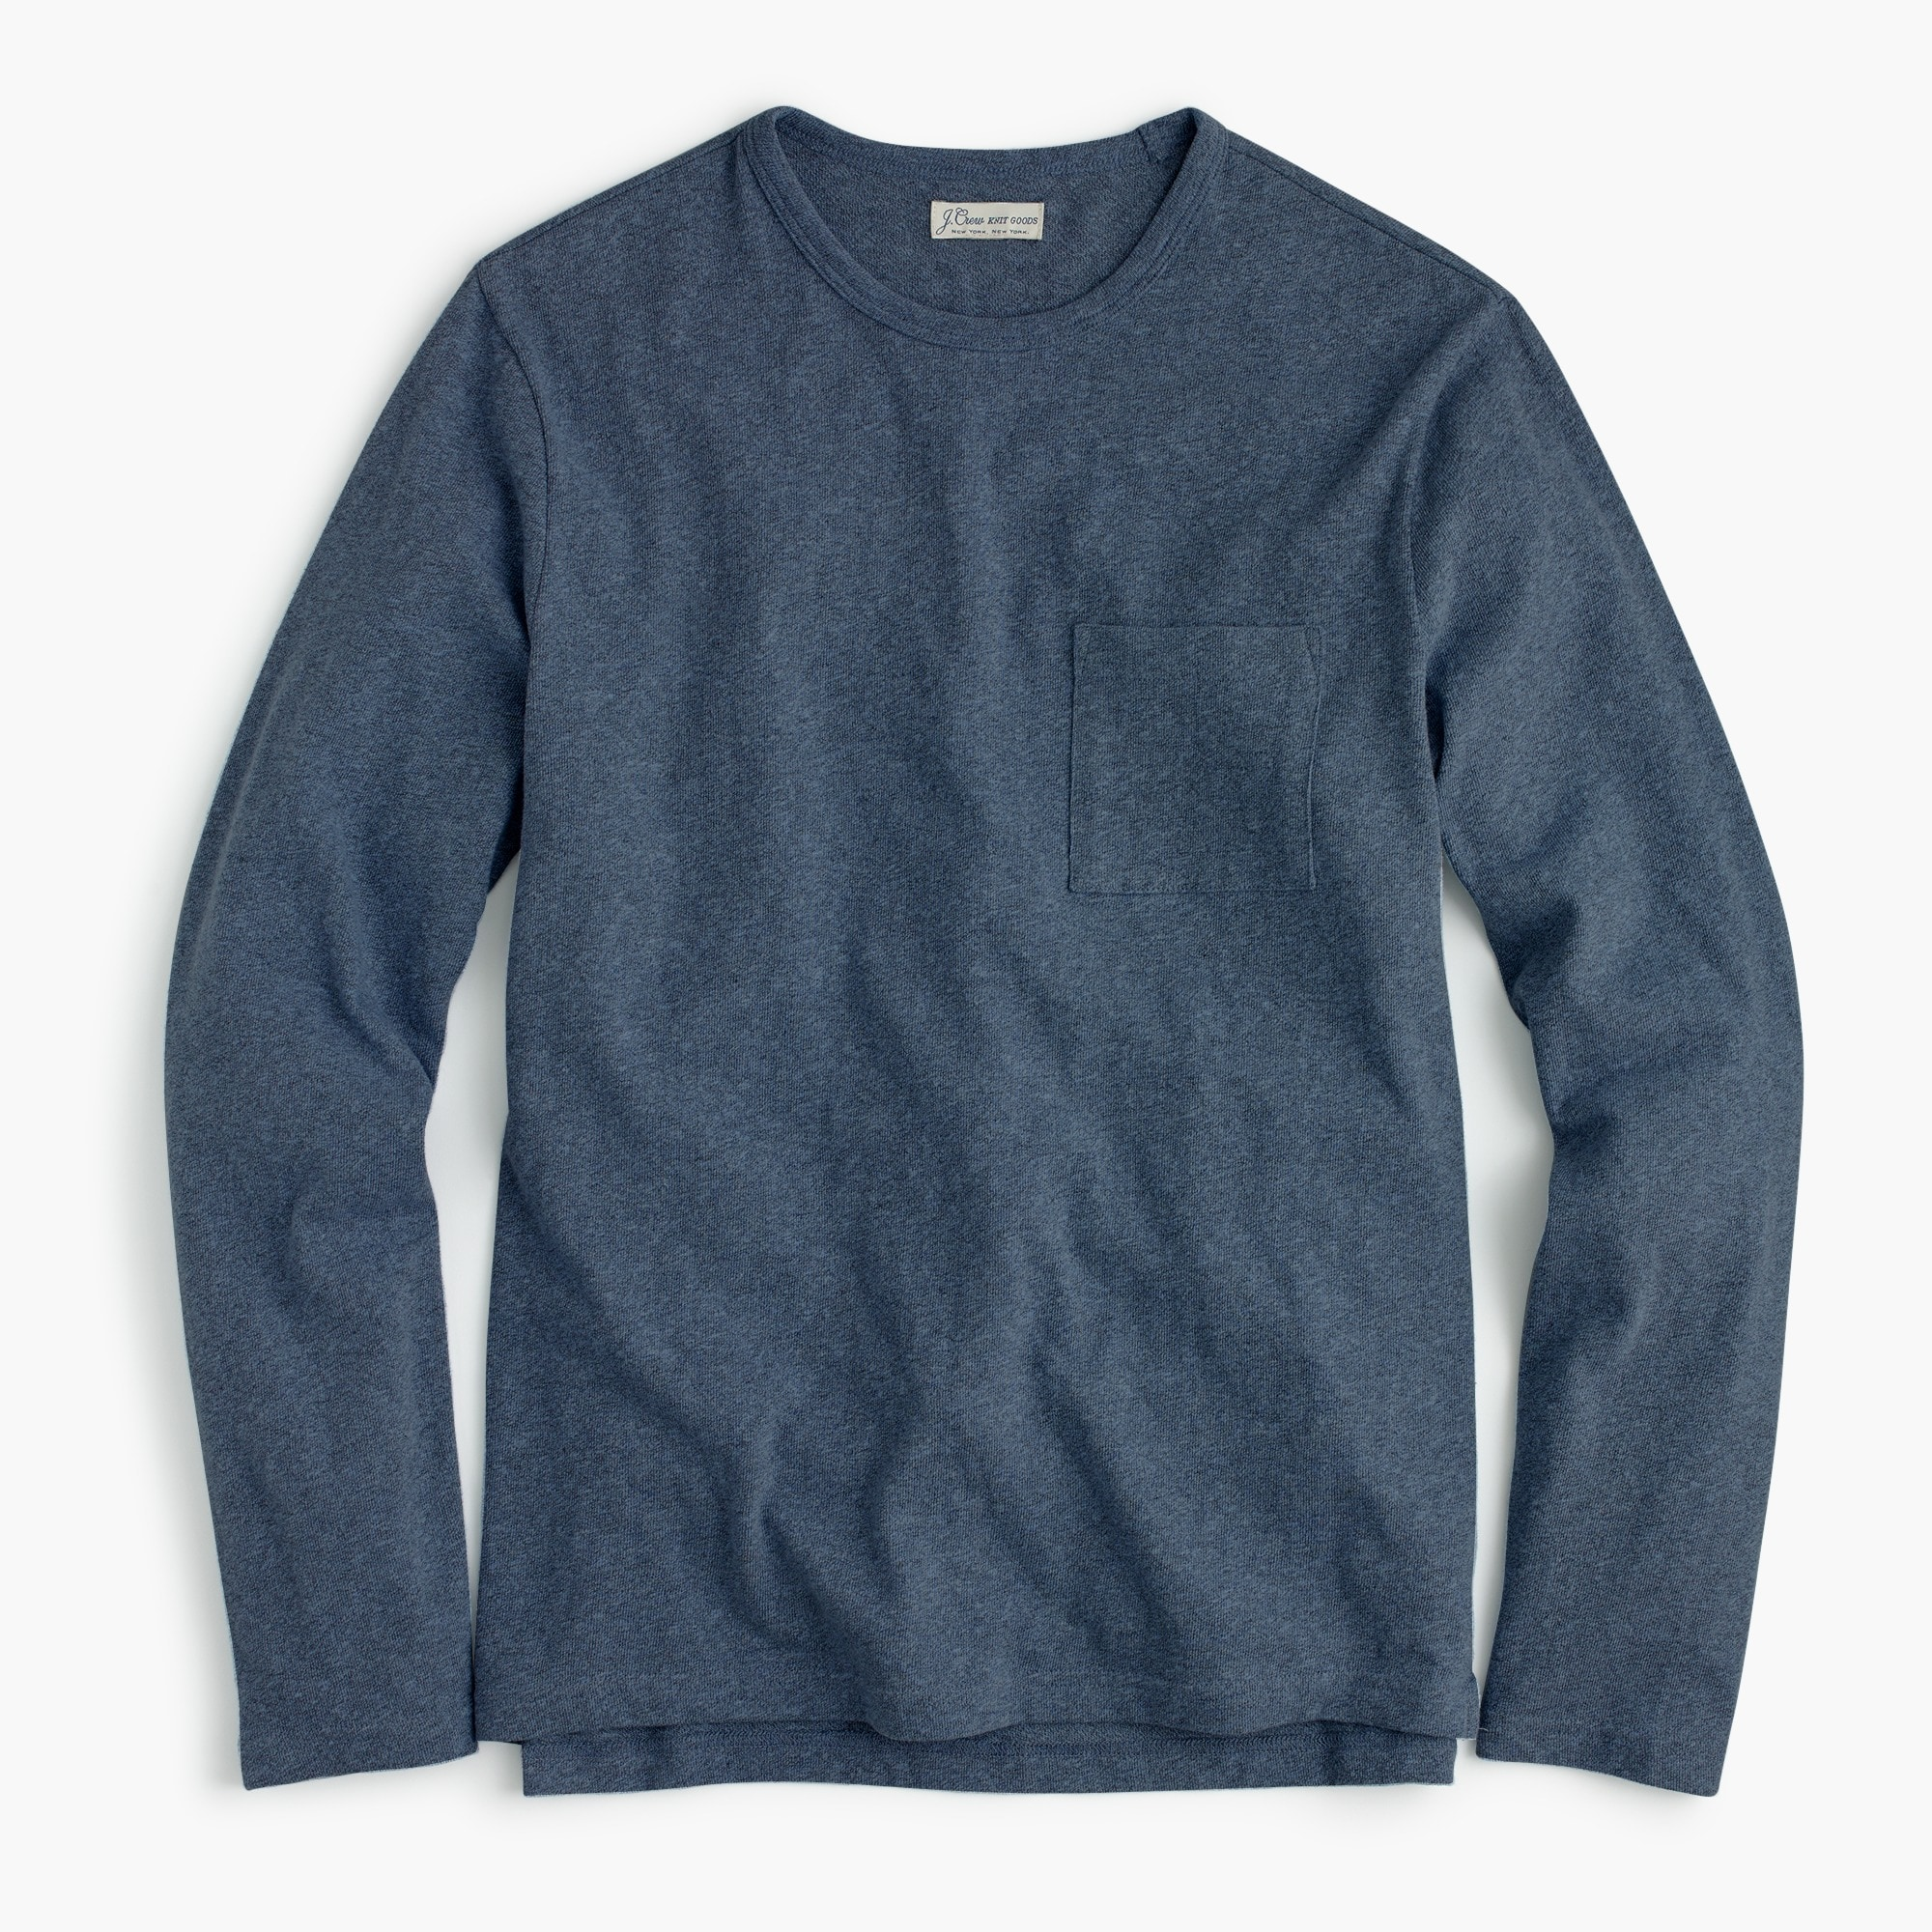 Tall long-sleeve T-shirt in overdyed jersey